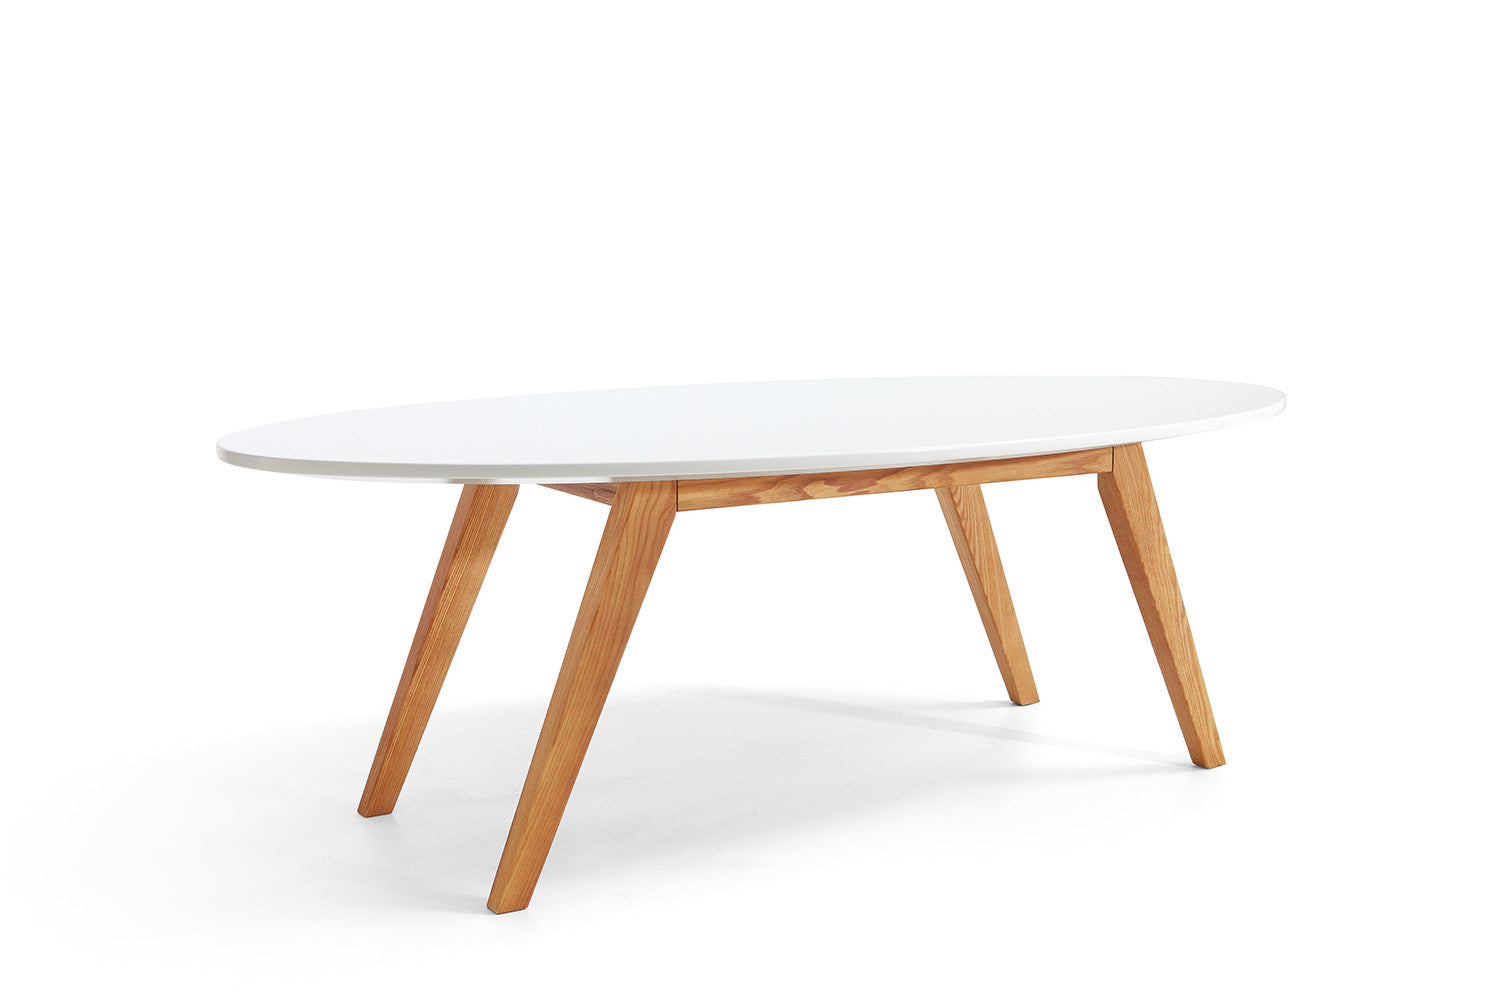 Table basse design en bois blanche b le dewarens for Table design blanche